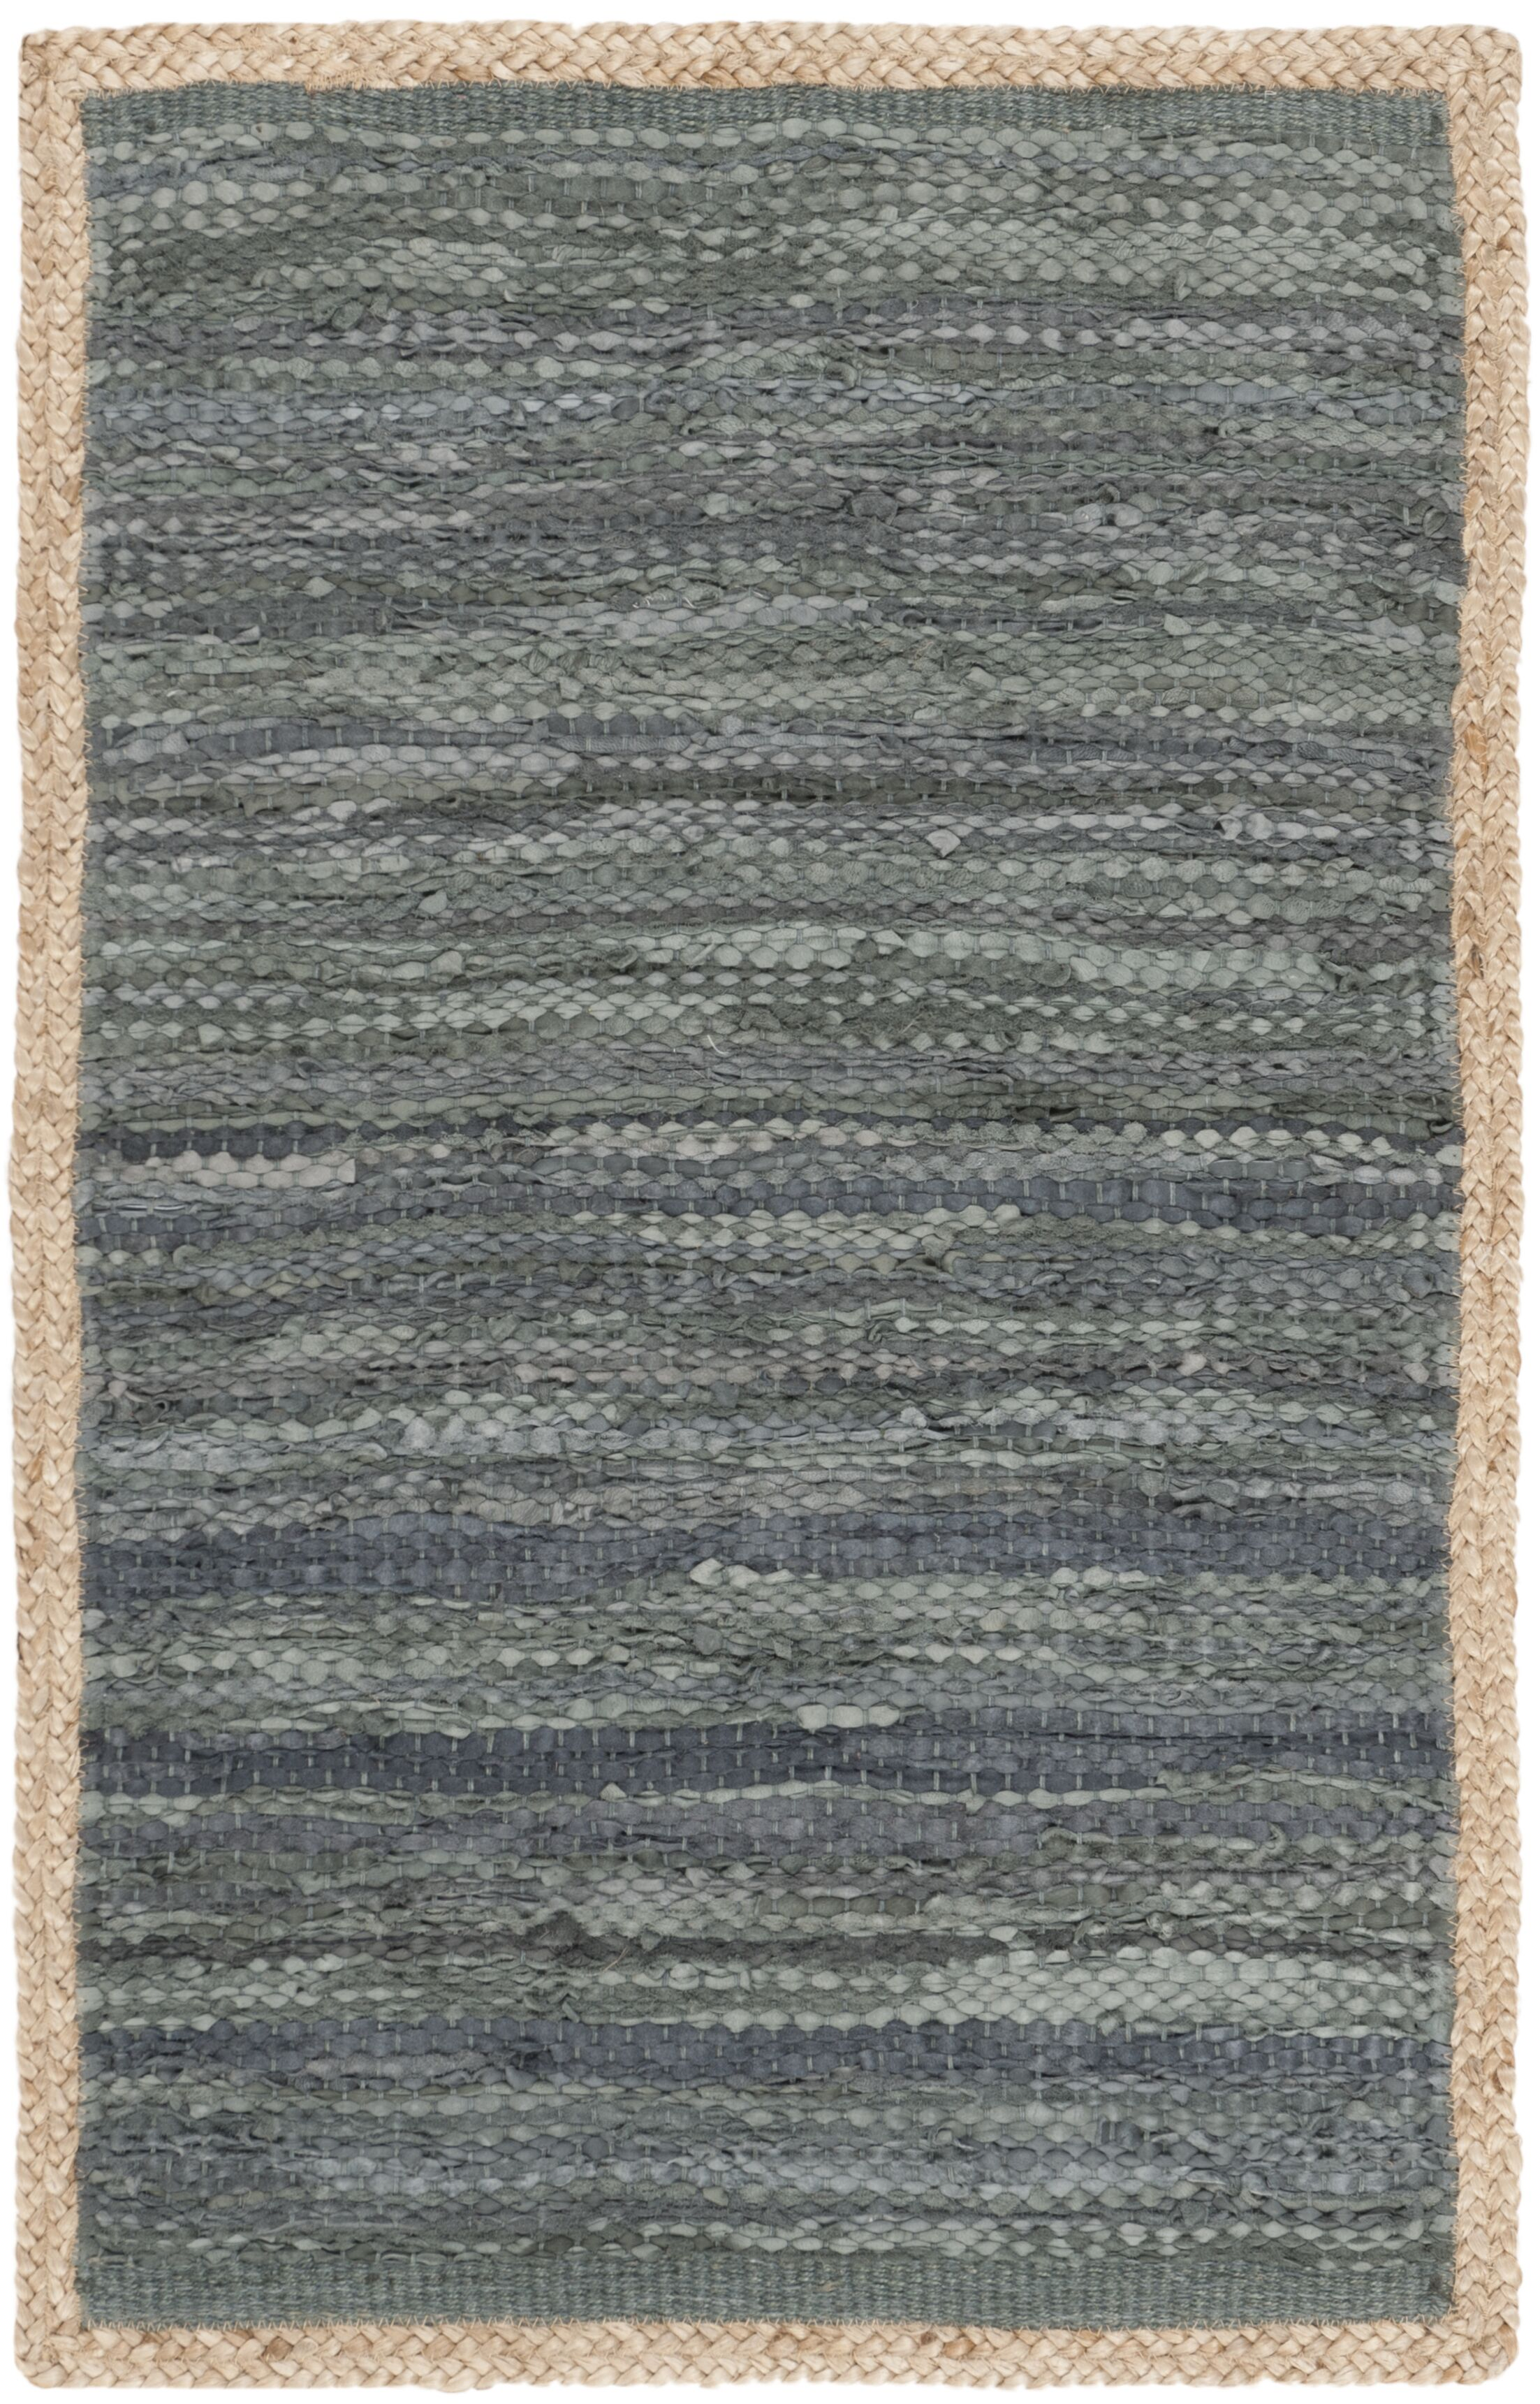 Church Hand-Woven Gray Area Rug Rug Size: Rectangle 4' x 6'